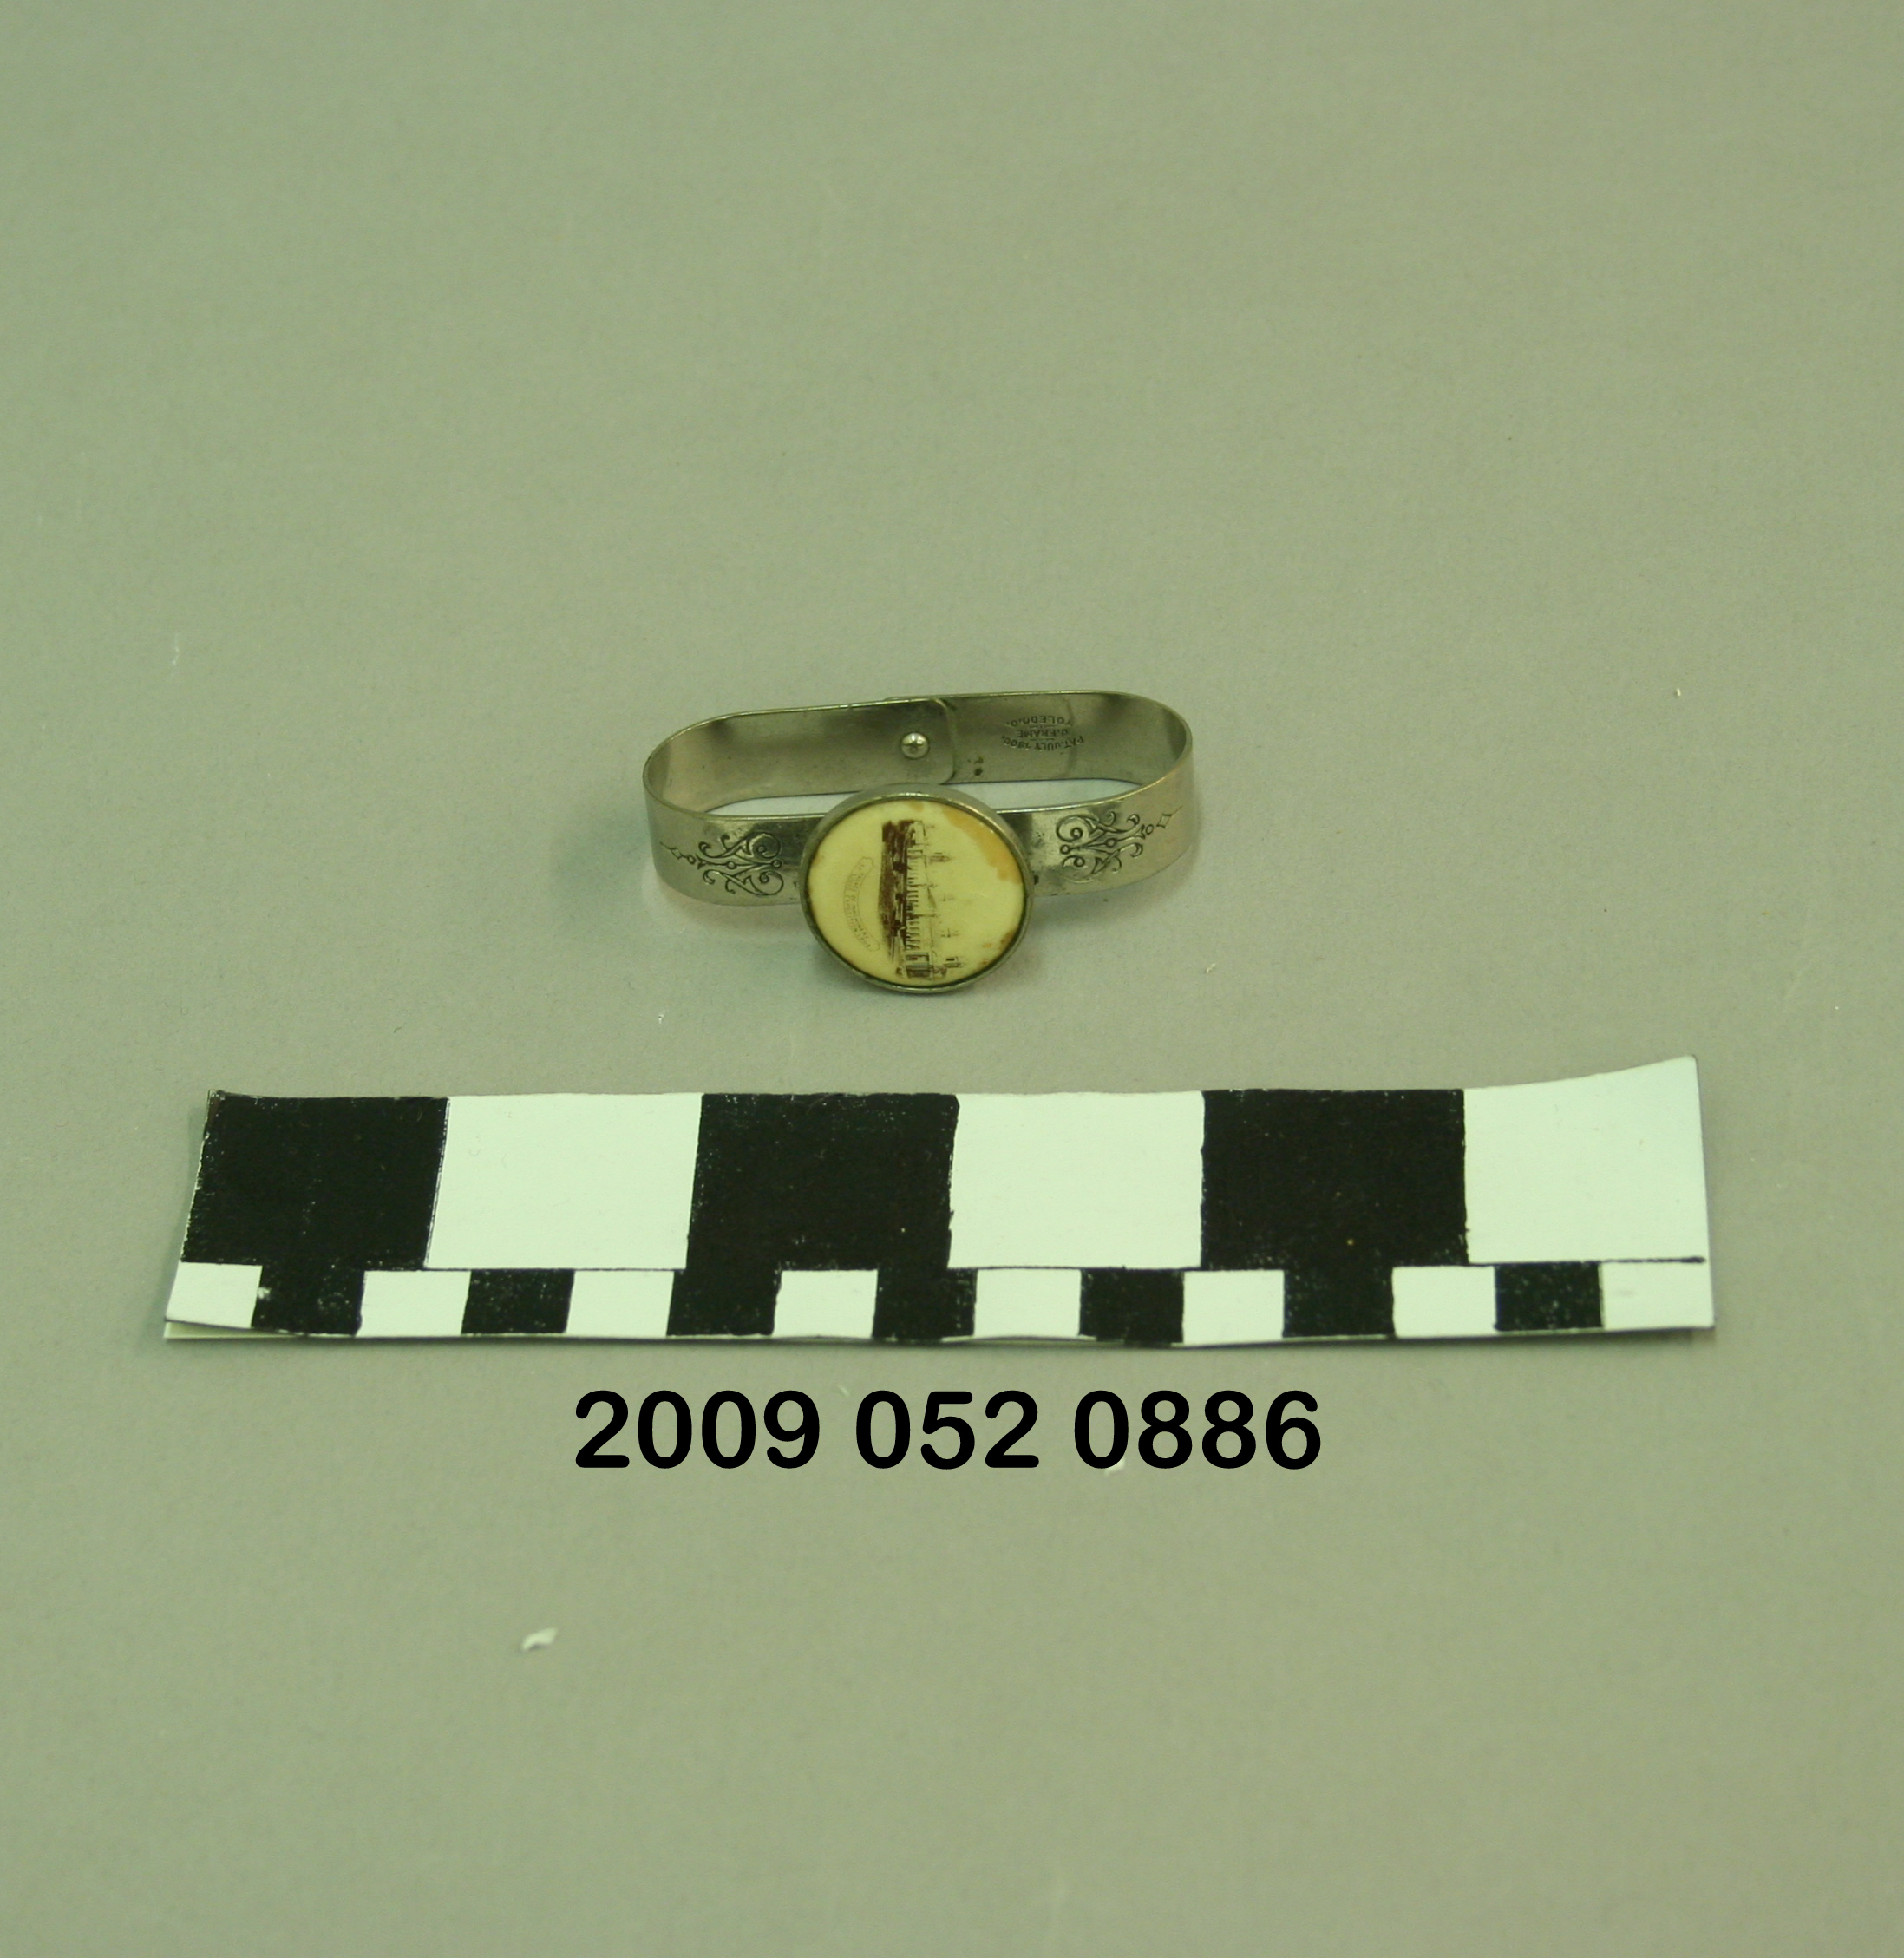 File Small Folding Metal Napkin Ring With Black And White Image Of The Palace Of Machinery Jpg Wikimedia Commons